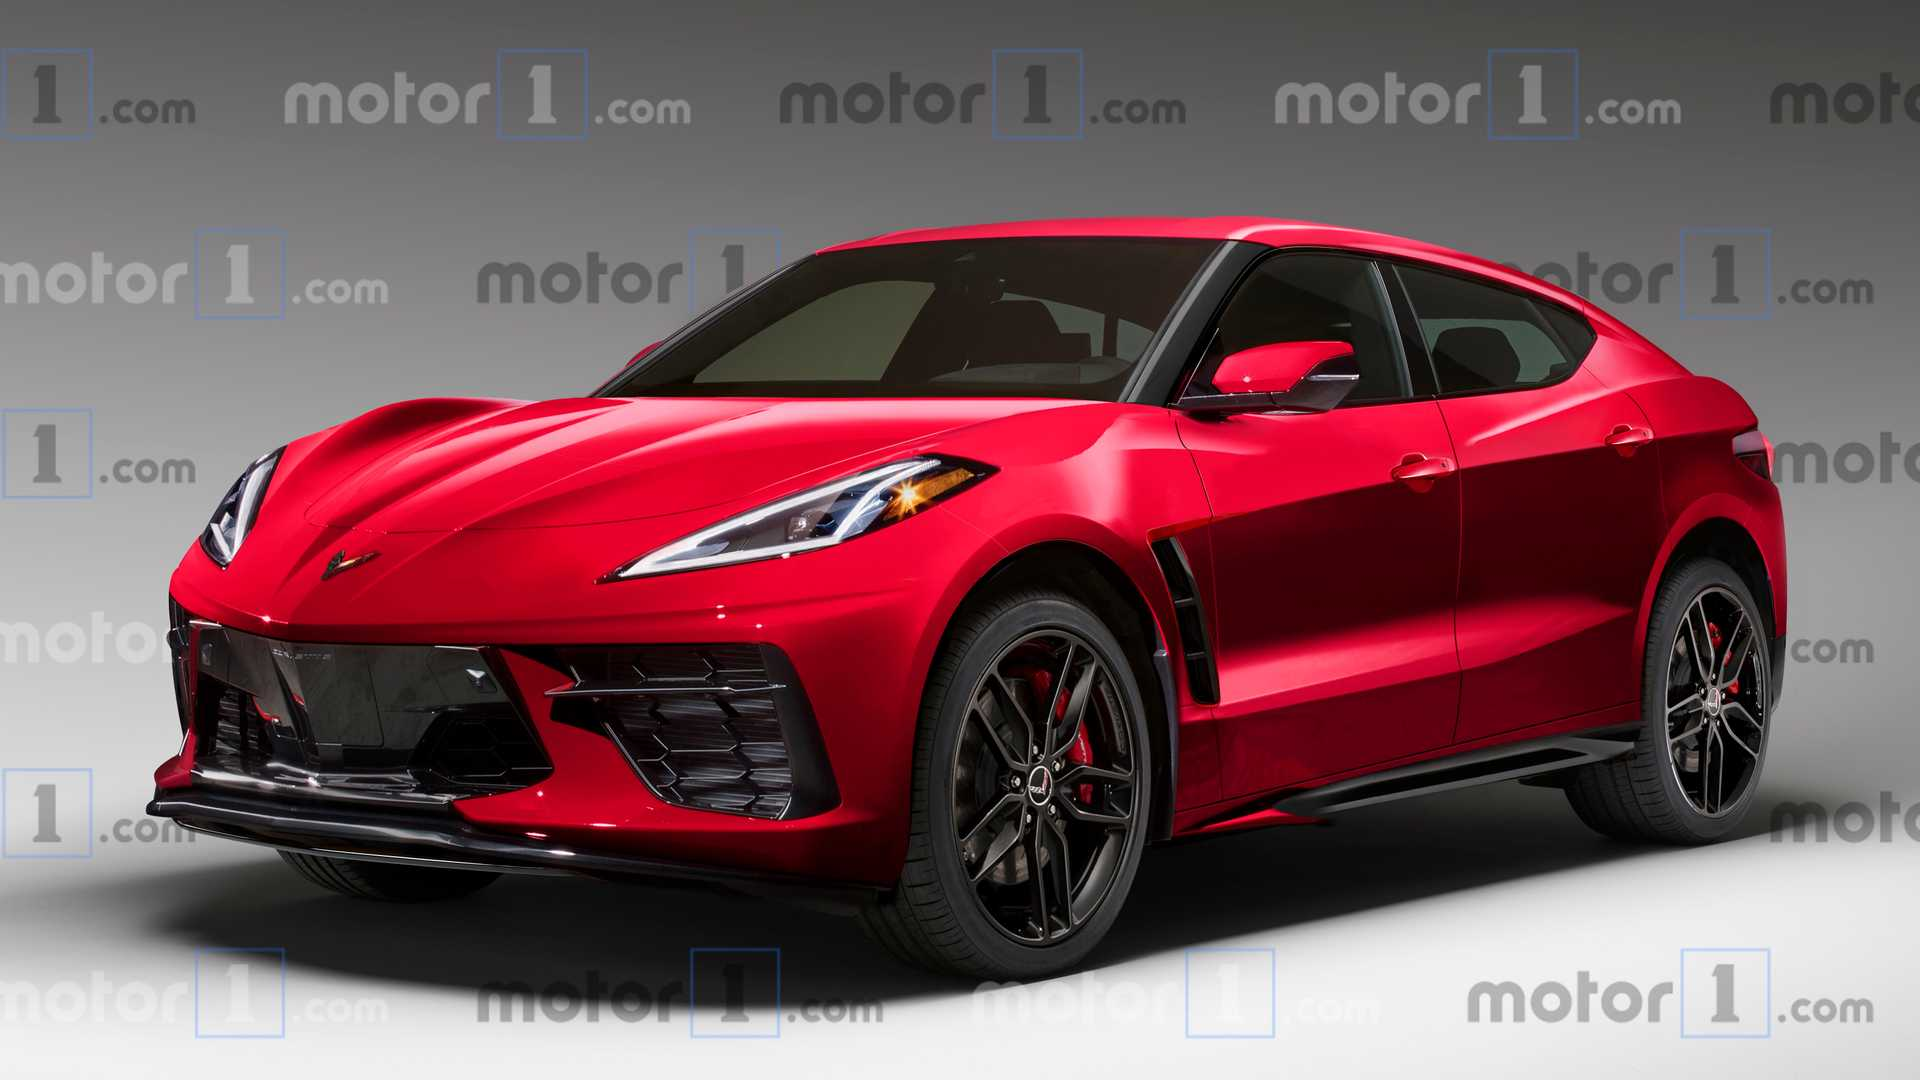 Rendering of a possible Corvette SUV (Image courtesy of Motor1.com)